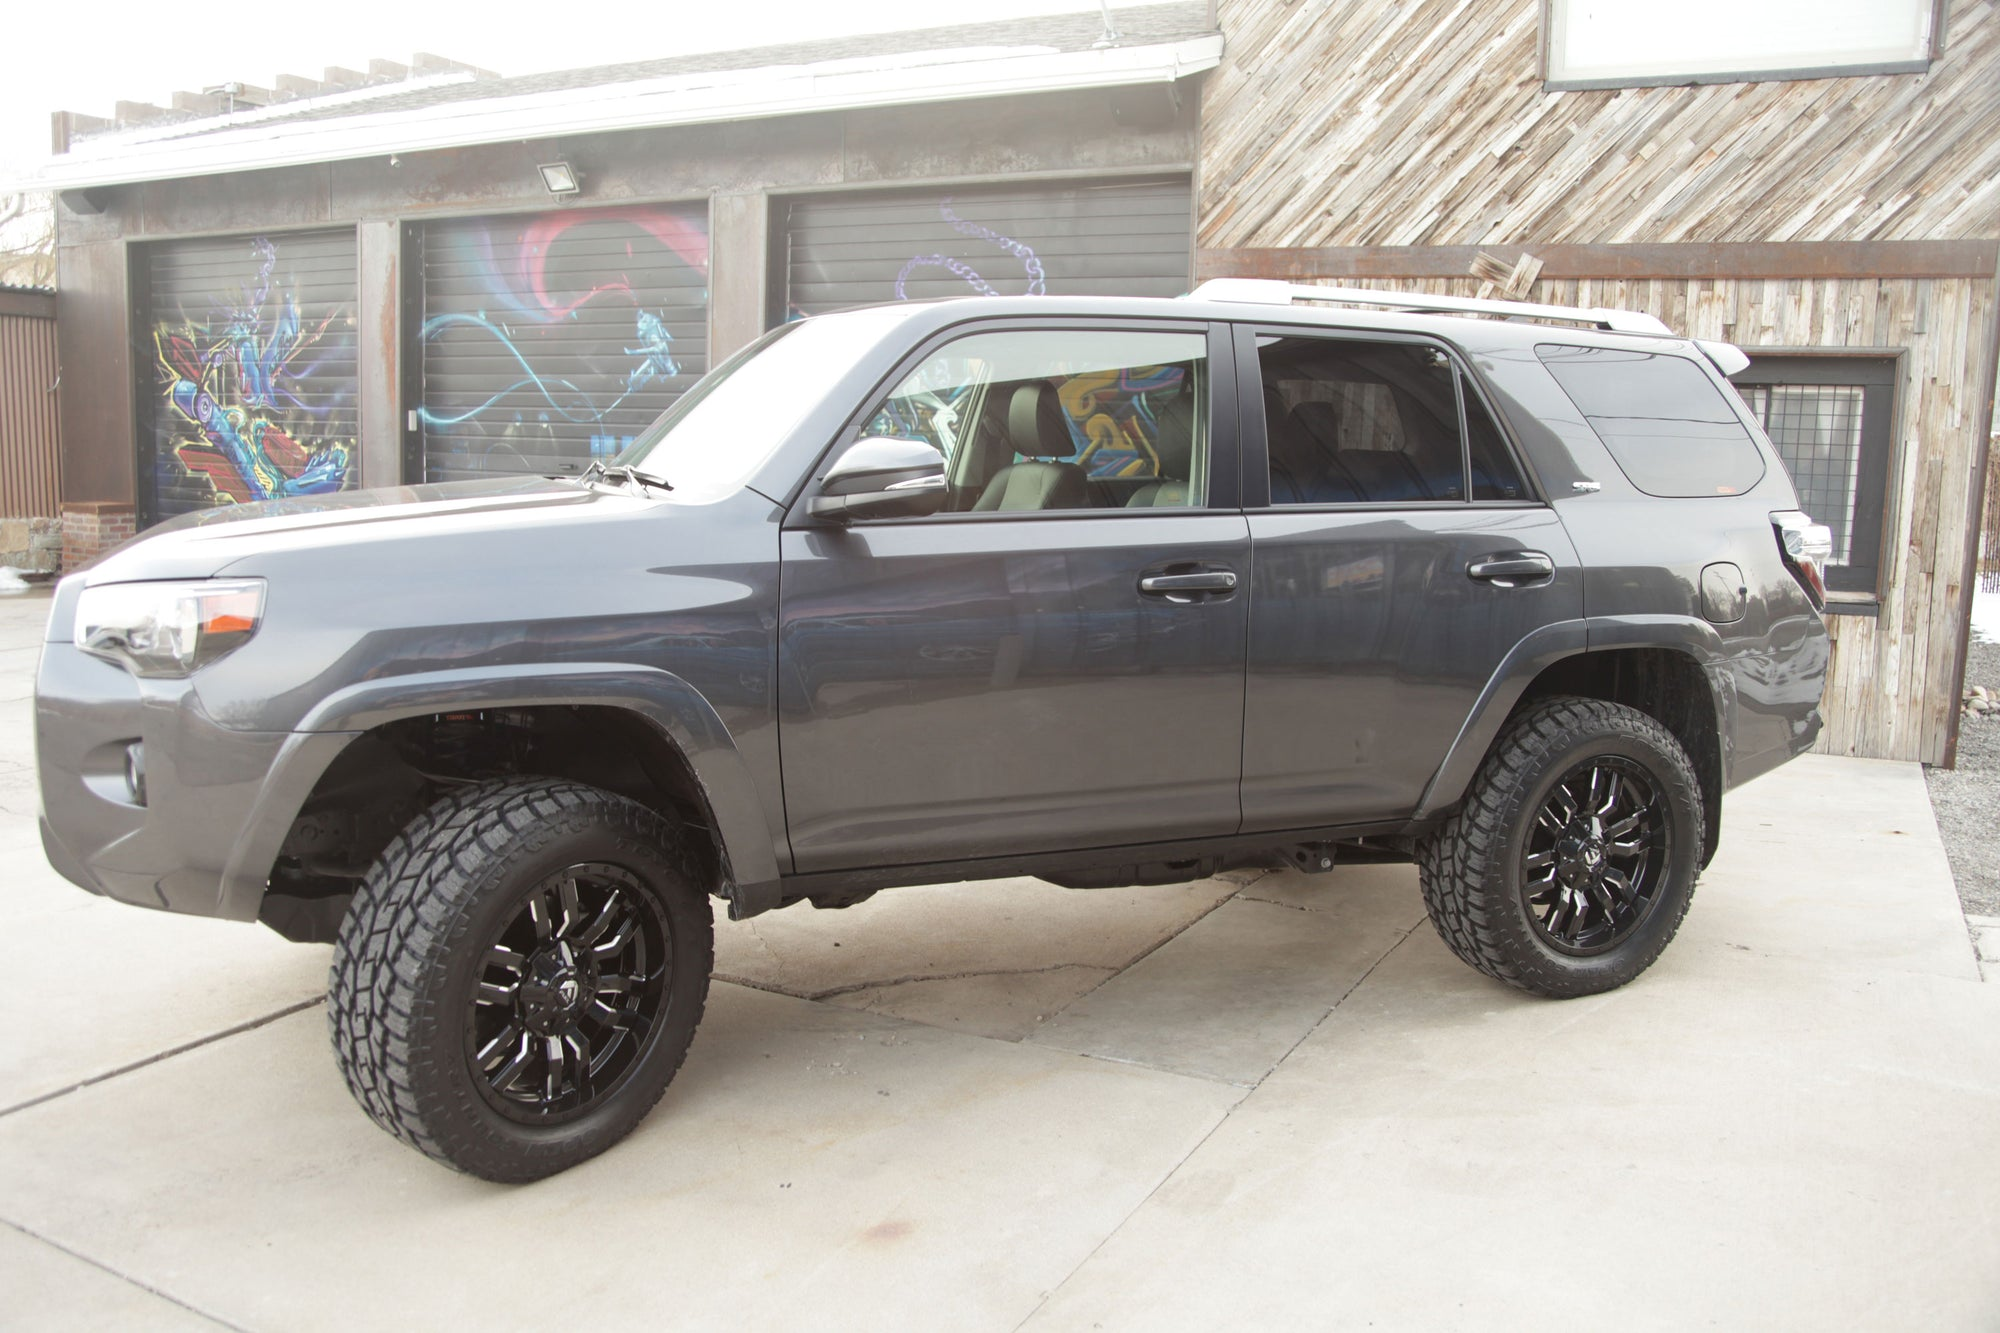 Toyota 4runner 3 1 Leveling Lift Kit Torq Engineering Llc